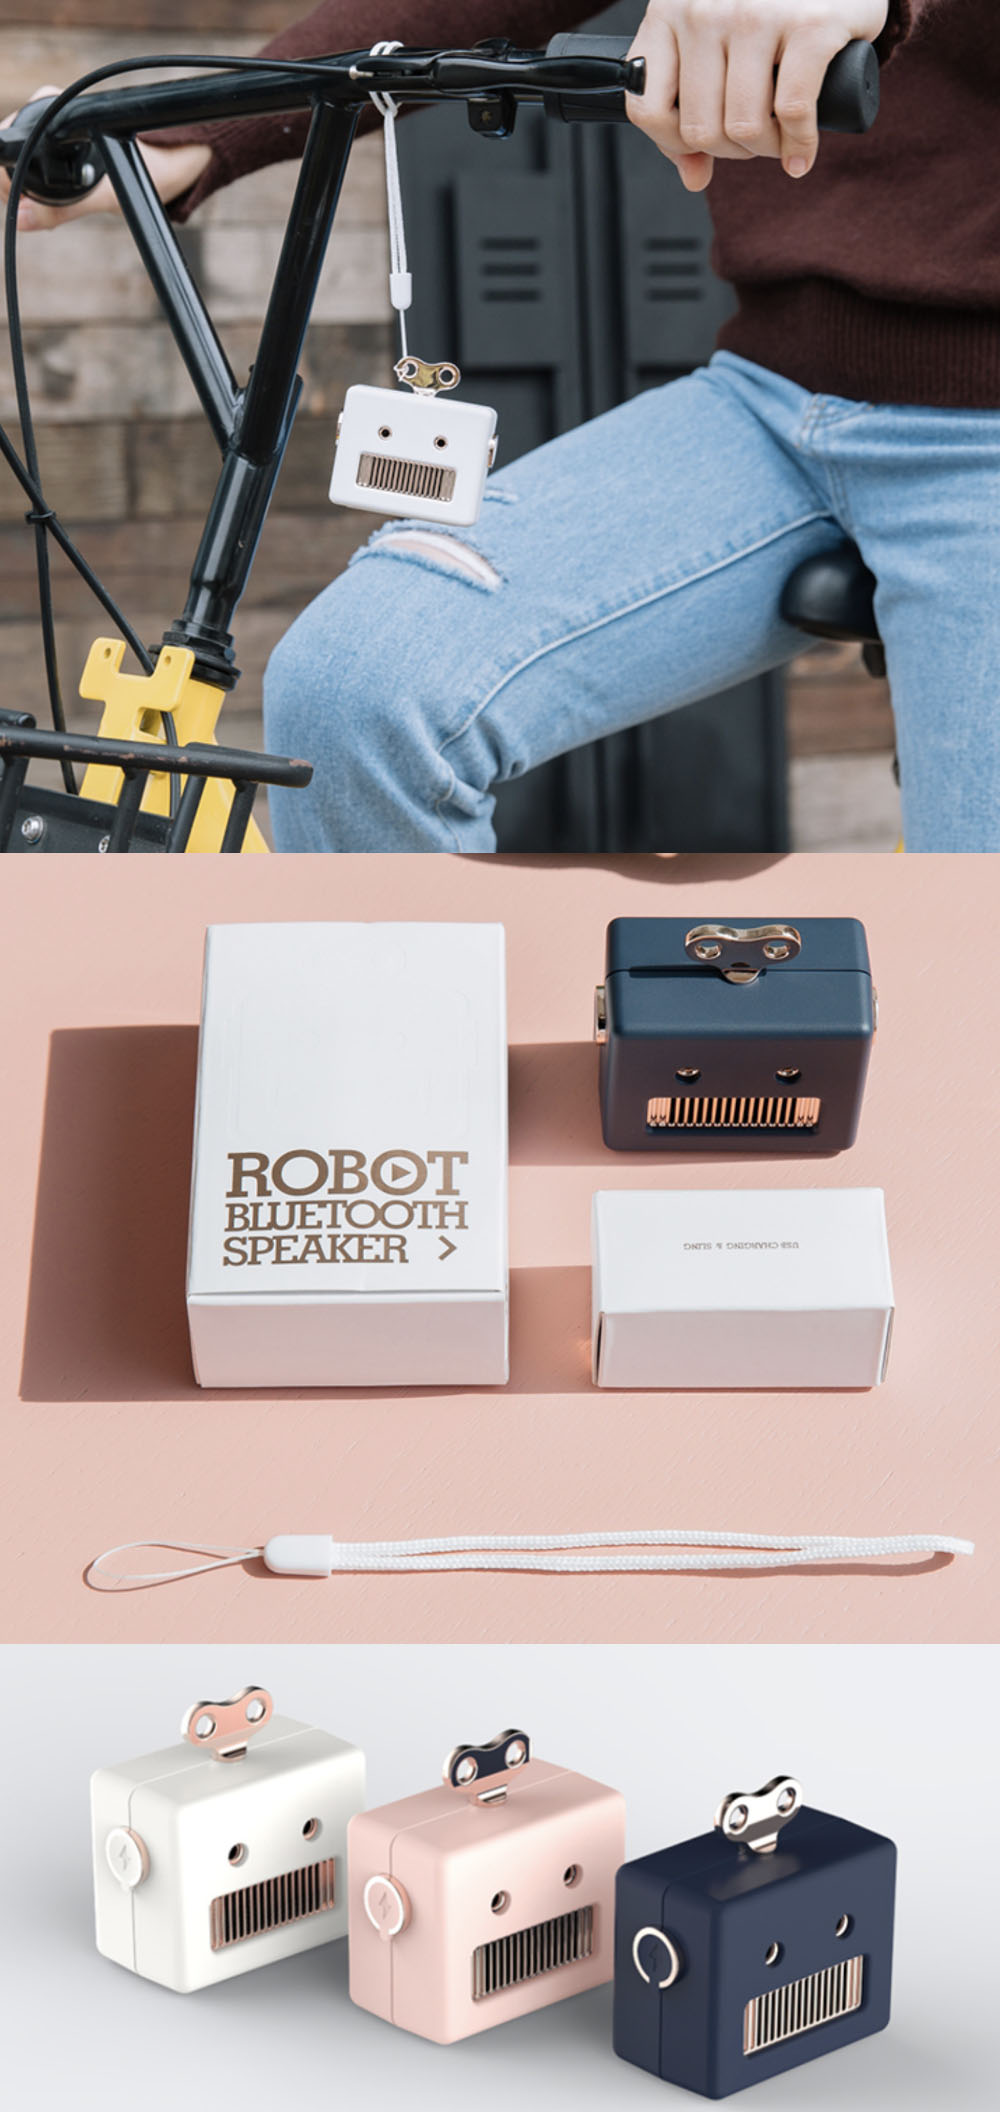 Robot Bluetooth Speaker Cute Gadget